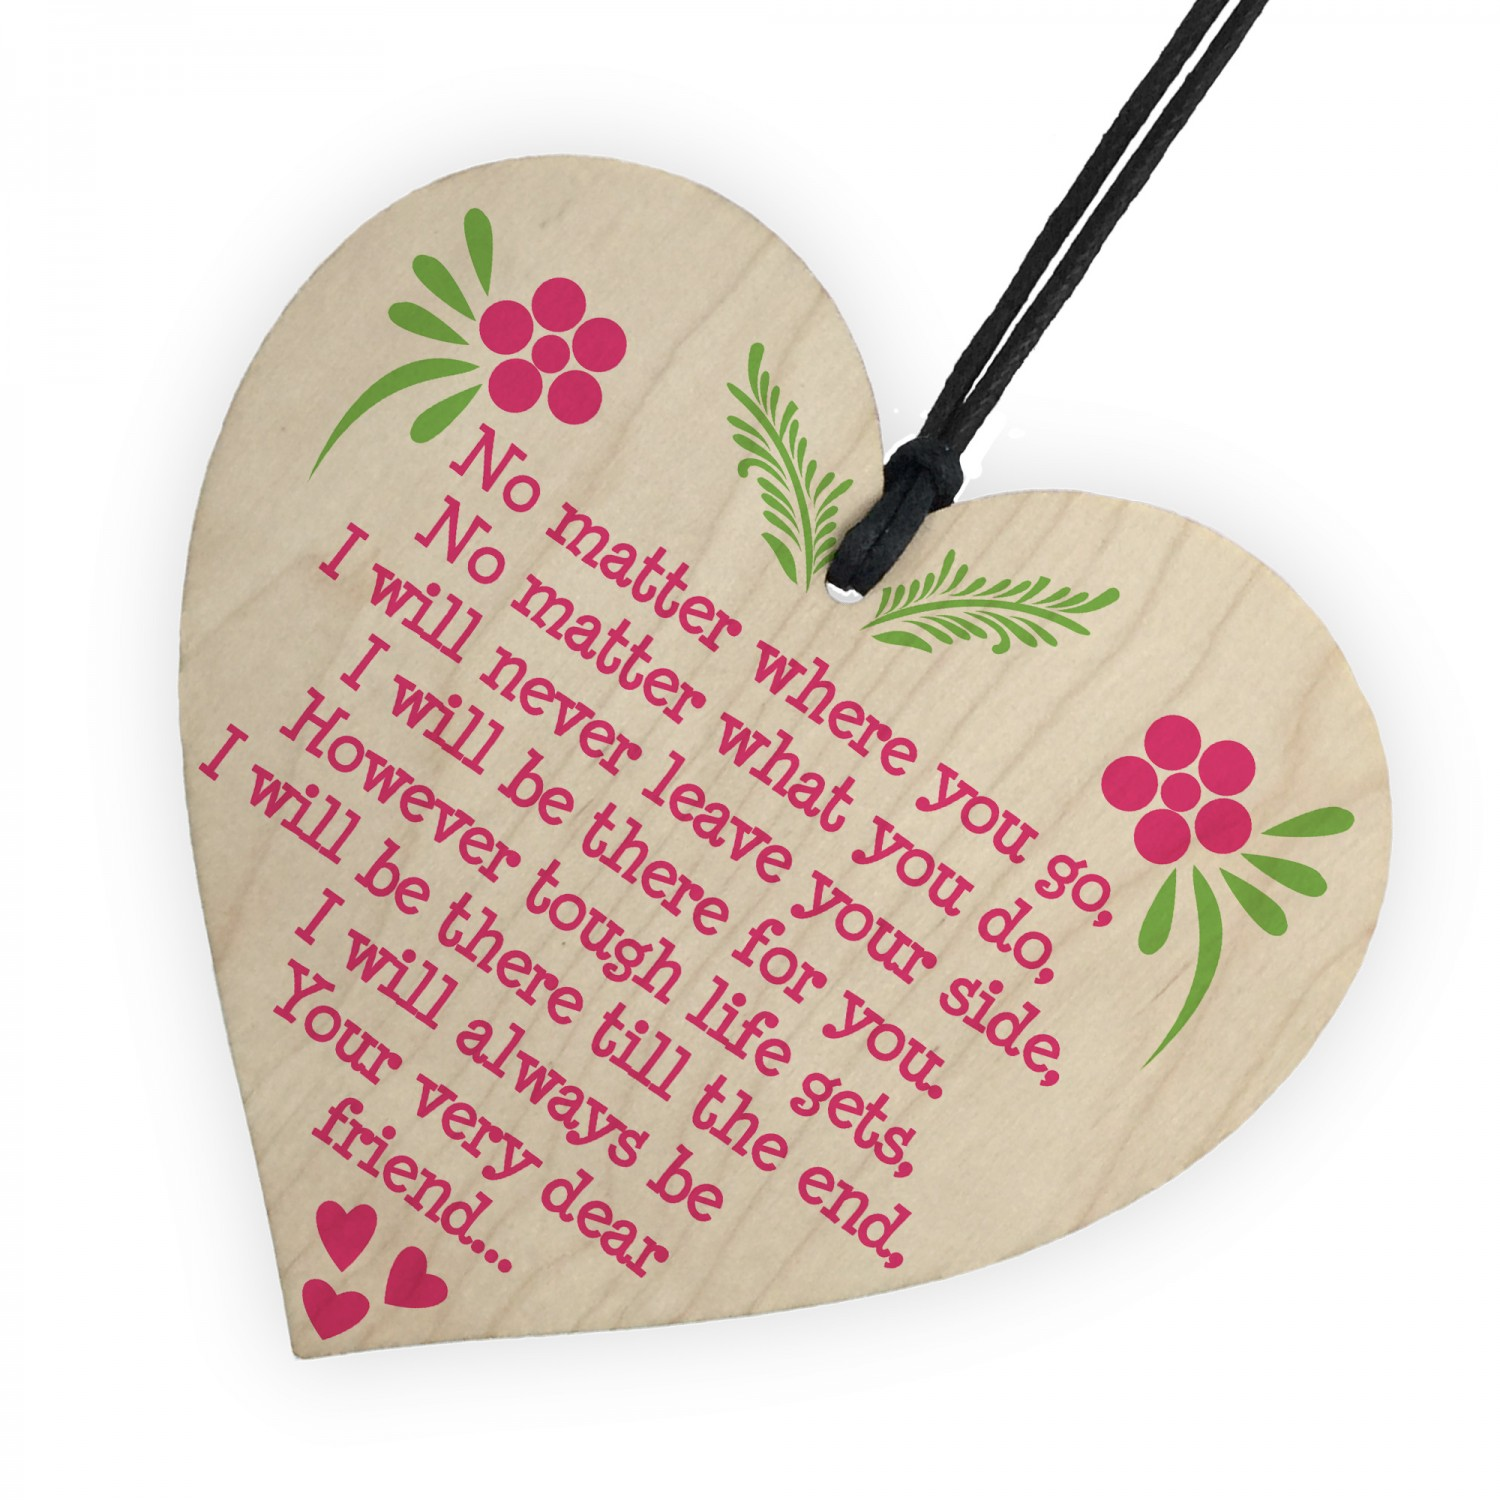 Dear Friend Poem Friendship Best Friend Home Gift Hanging Plaque Every year we celebrate friendship day with our friendships come and friendships go like wave upon the sand like day and night like birds in flight like snowflakes when they land but you and i are. dear friend poem friendship best friend